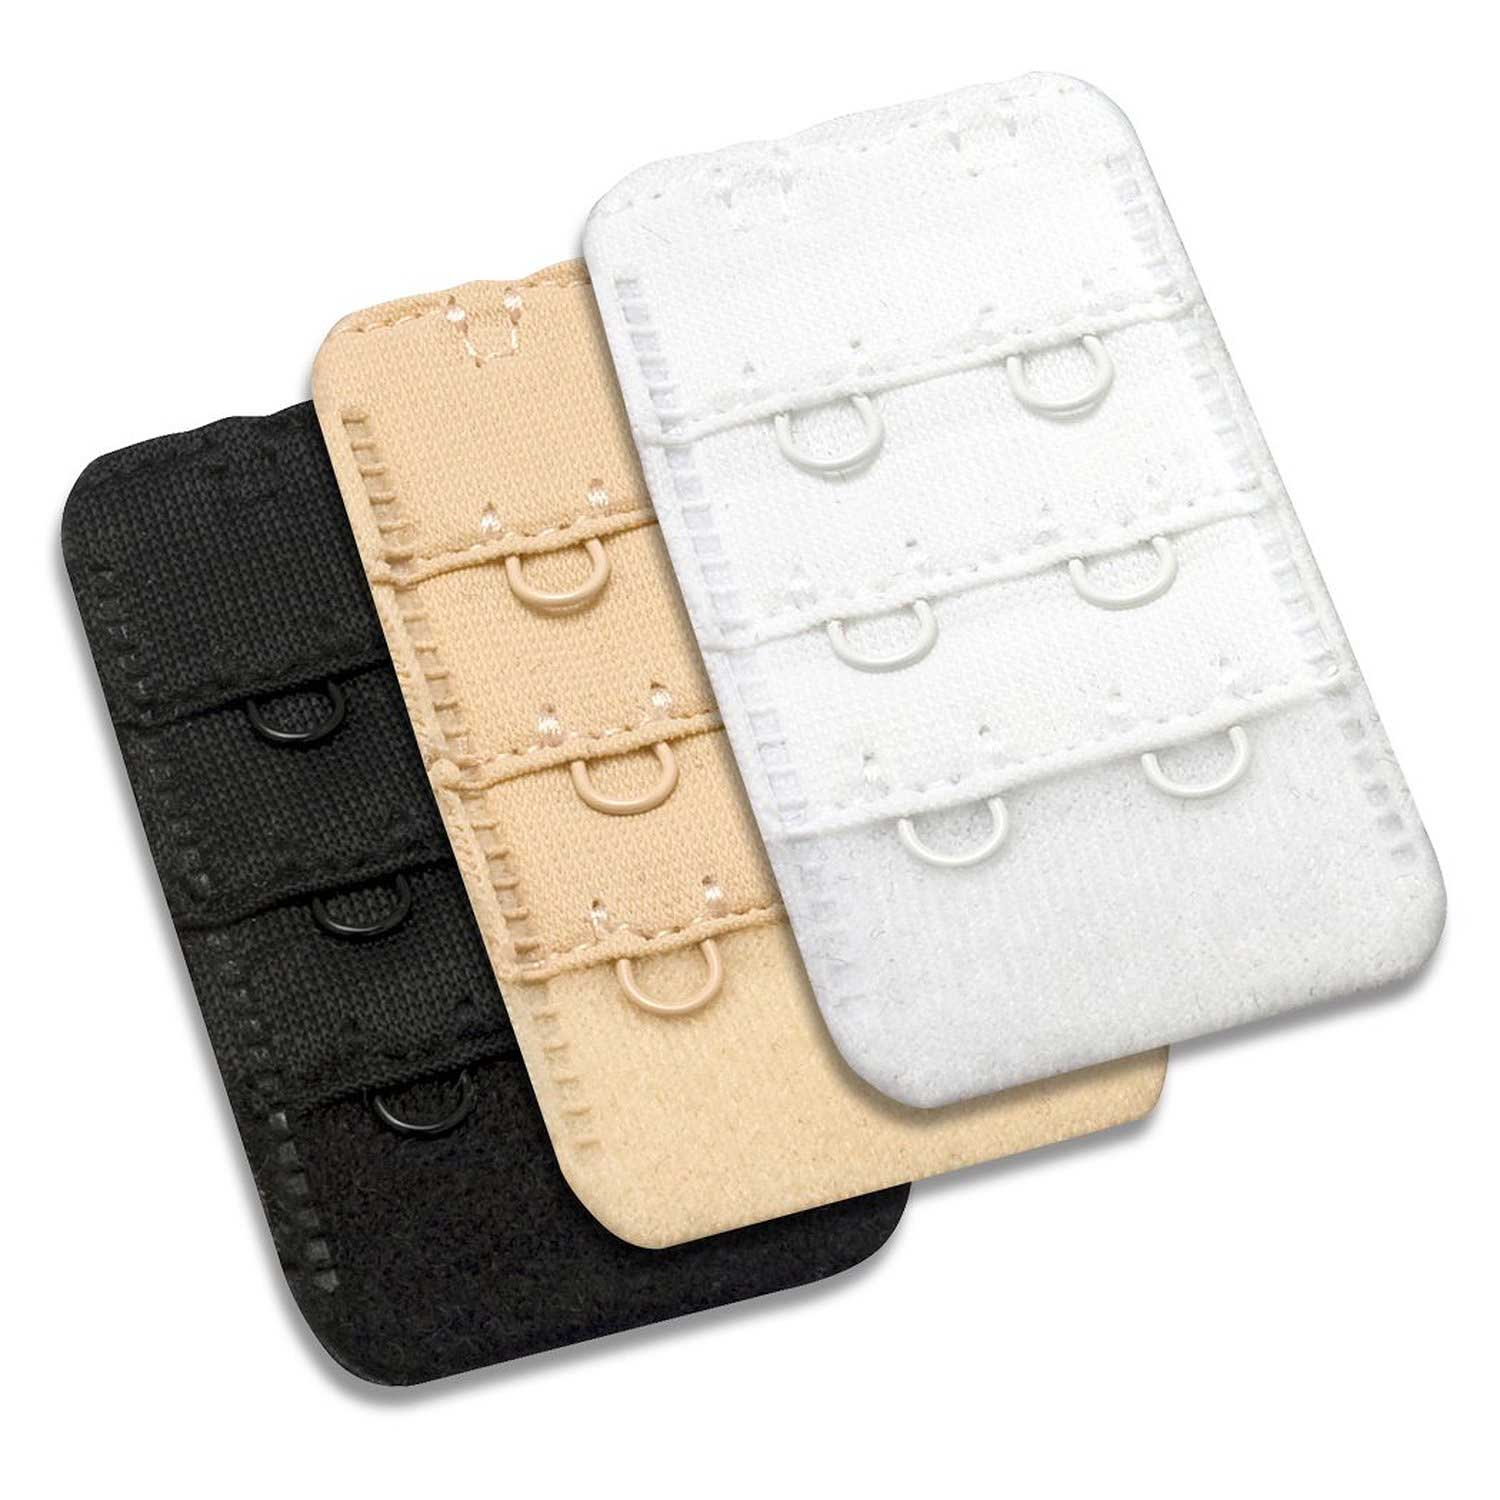 Shop bra extenders at downloadsolutionspa5tr.gq Easy online ordering, free shipping.